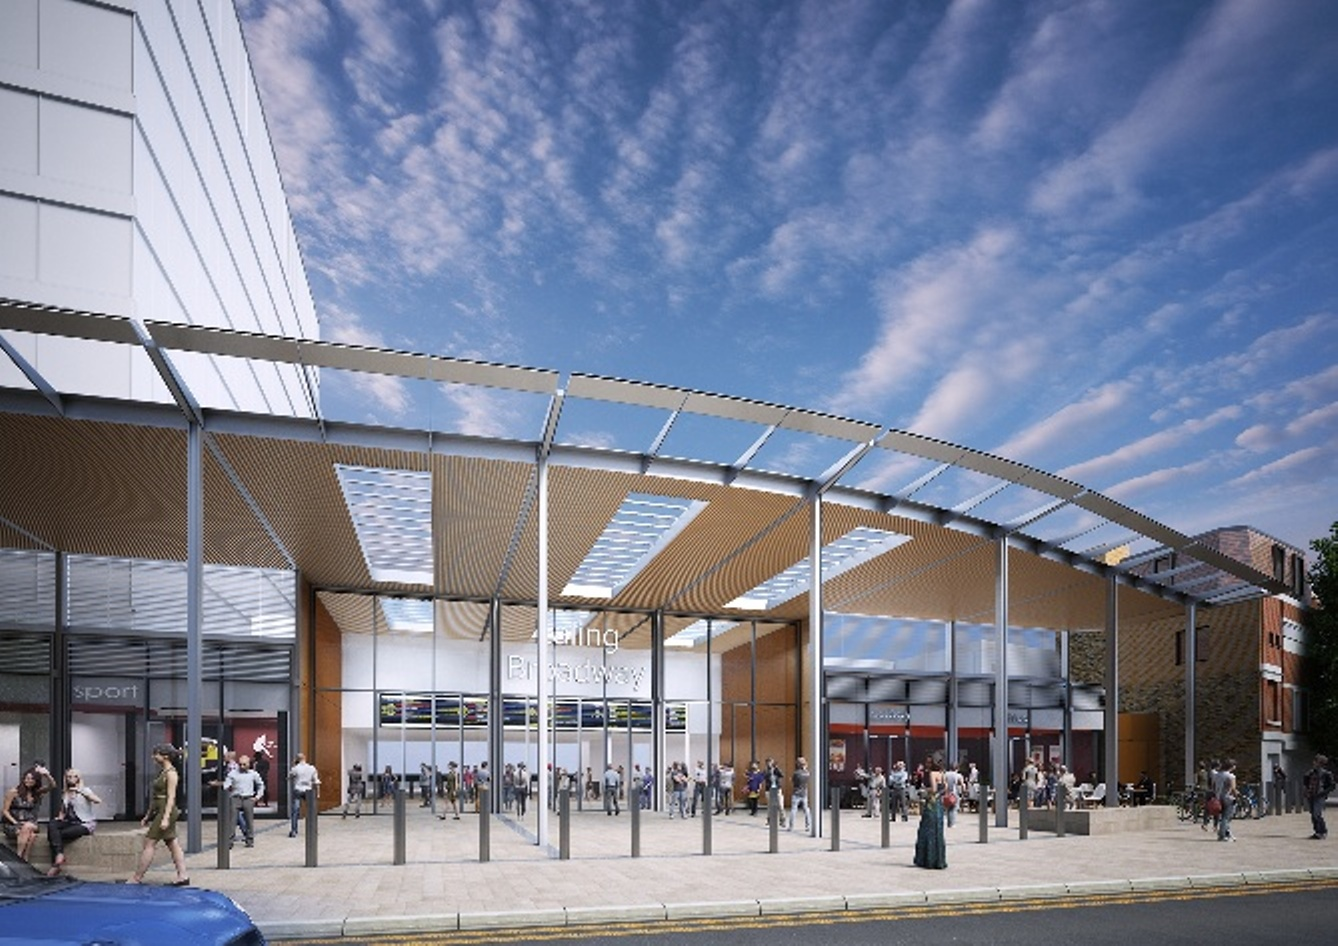 How the new station will look when it serves Crossrail